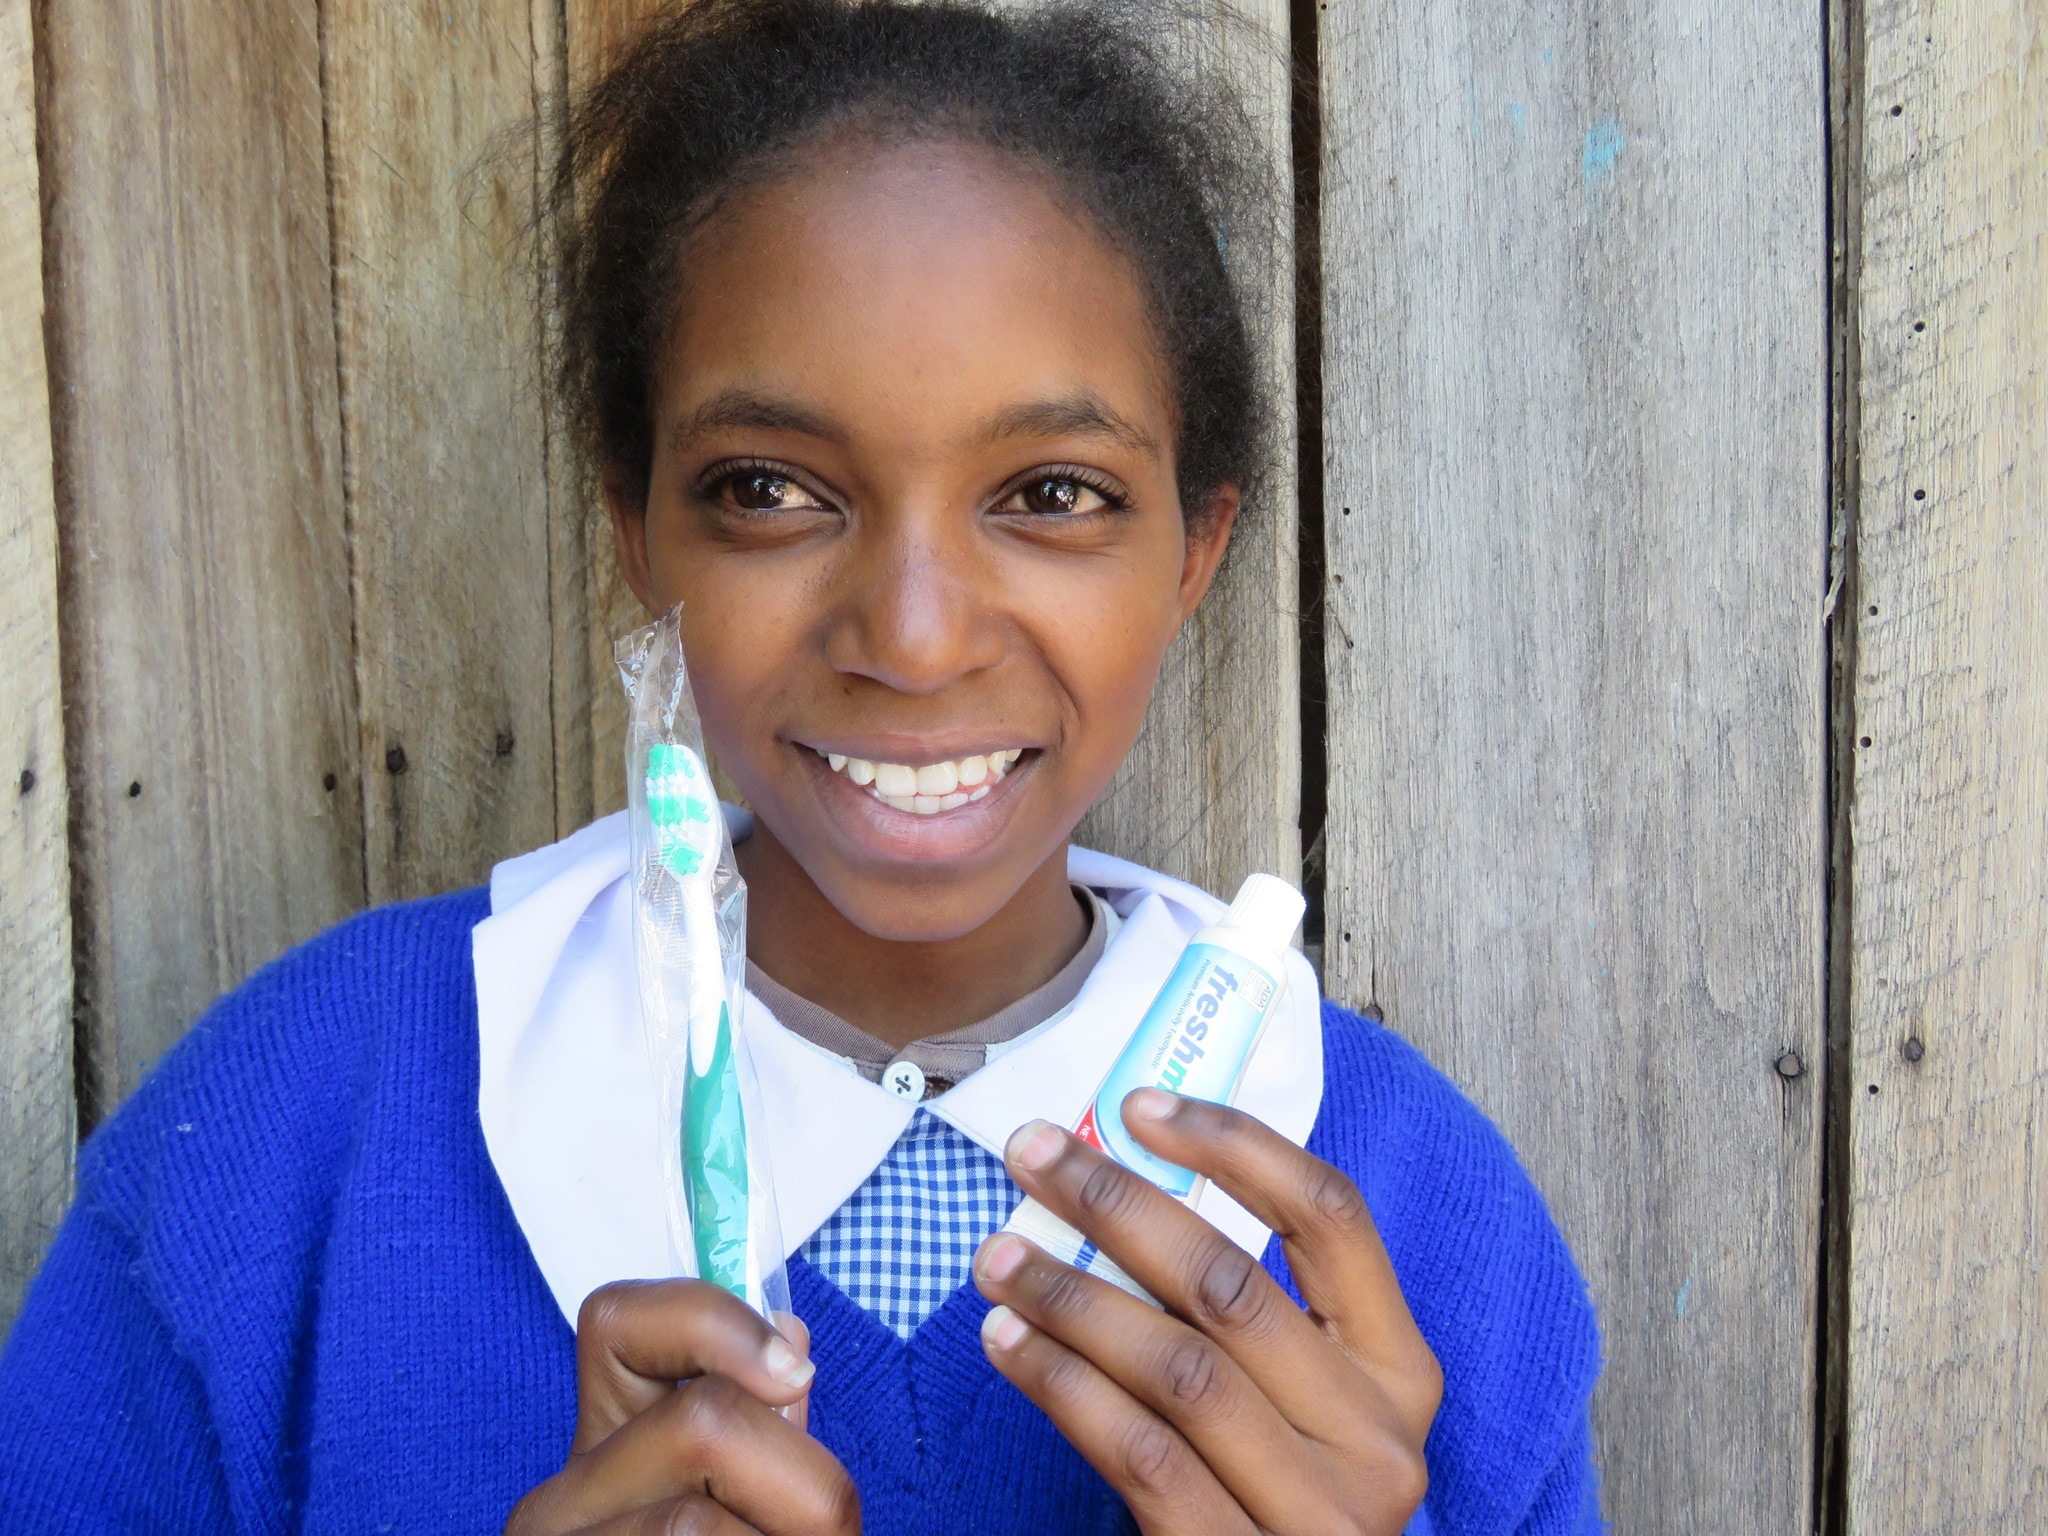 Moreen holding toothbrush and toothpaste, some of the many items donated to her for school.